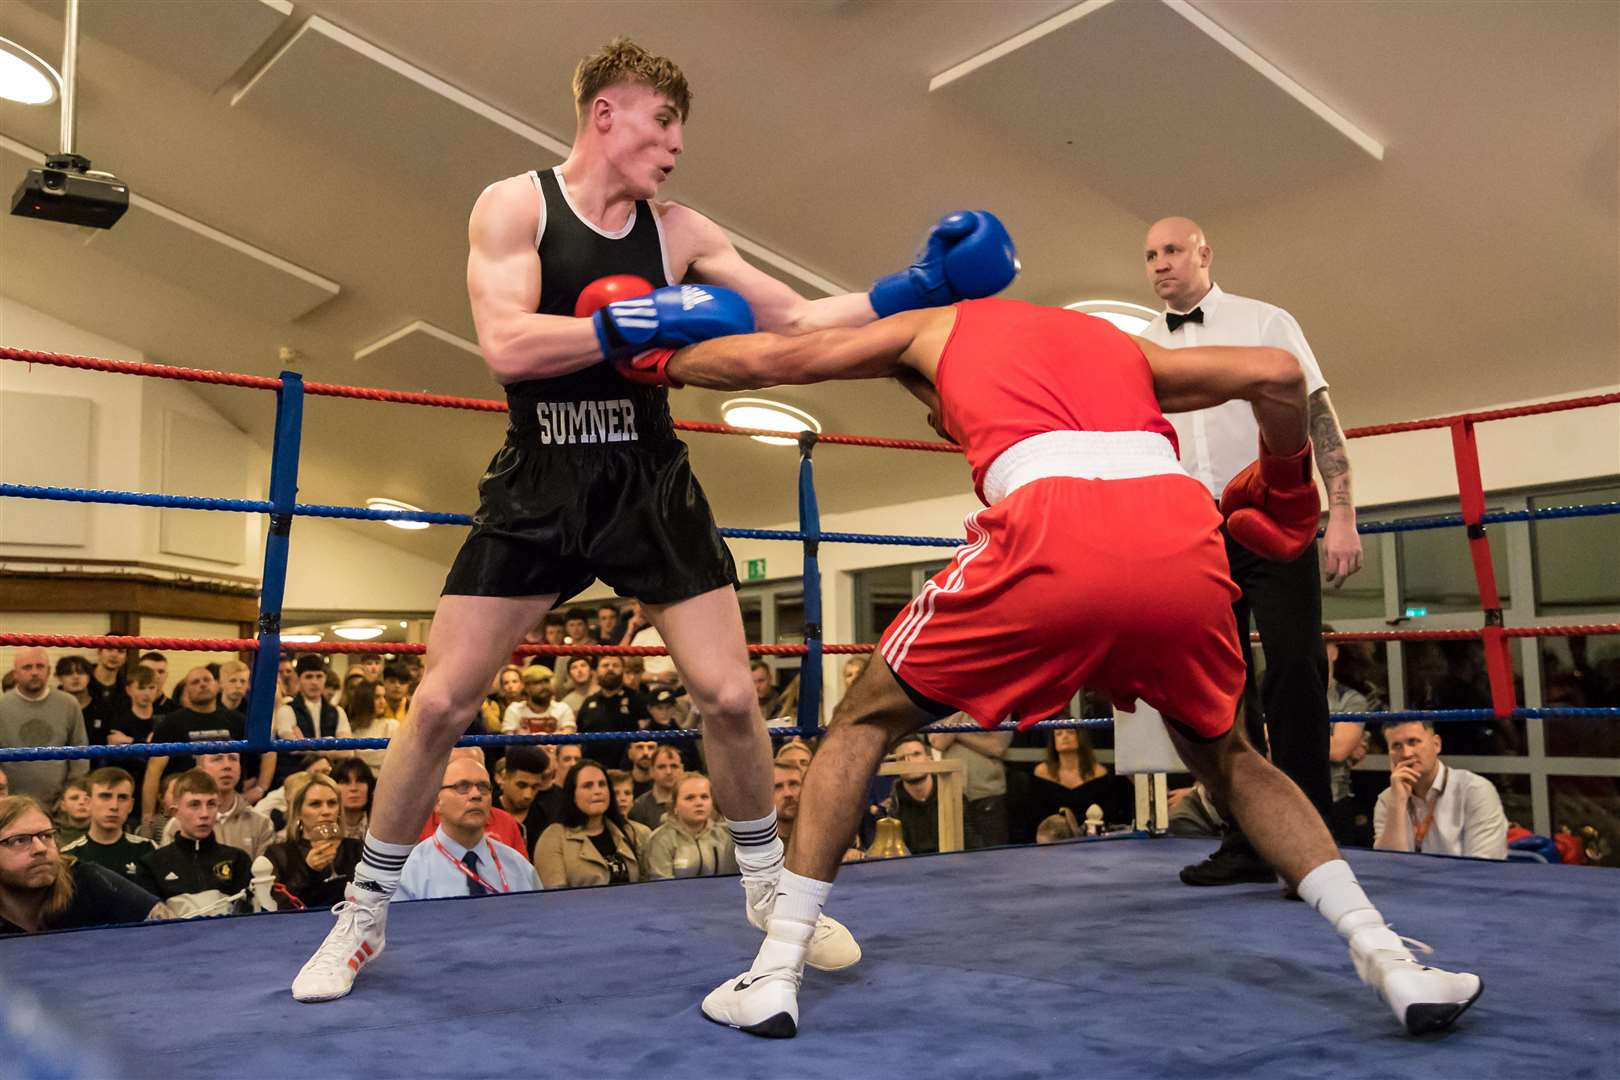 Sudbury ABC Home Show. Bout 14 - Light Heavy Weight - (Red) Balraj Khara (Westside) v (Sudbury) Jake Sumner (Blue).Winner - Jake Sumner - RSC. Picture Paul Tebbutt. (7445663)